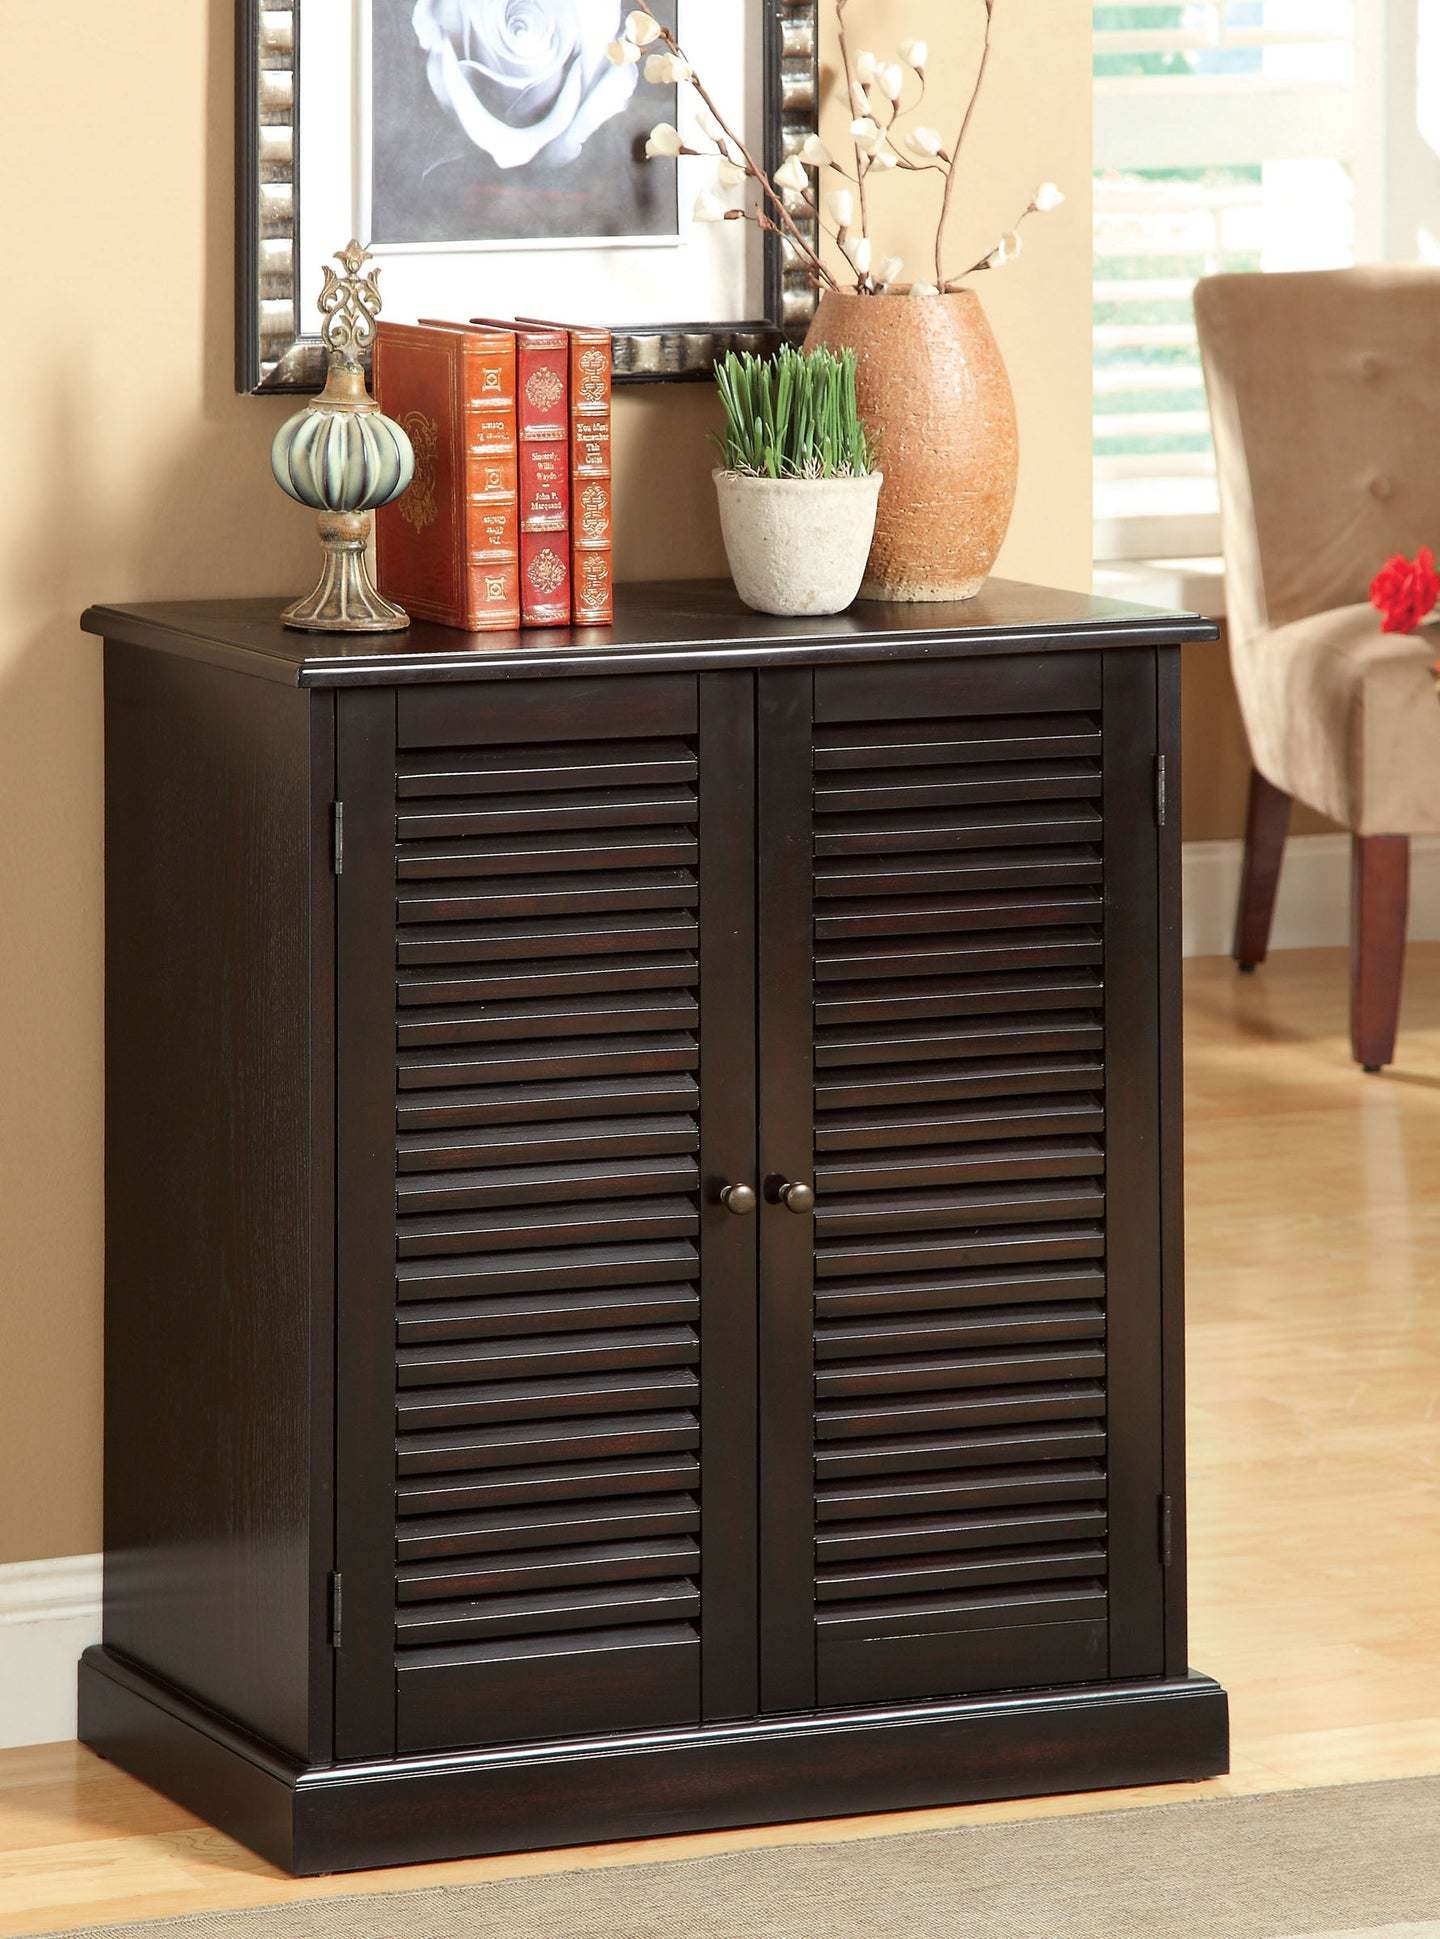 Furniture of America Della Espresso Wood Finish Shoe Cabinet